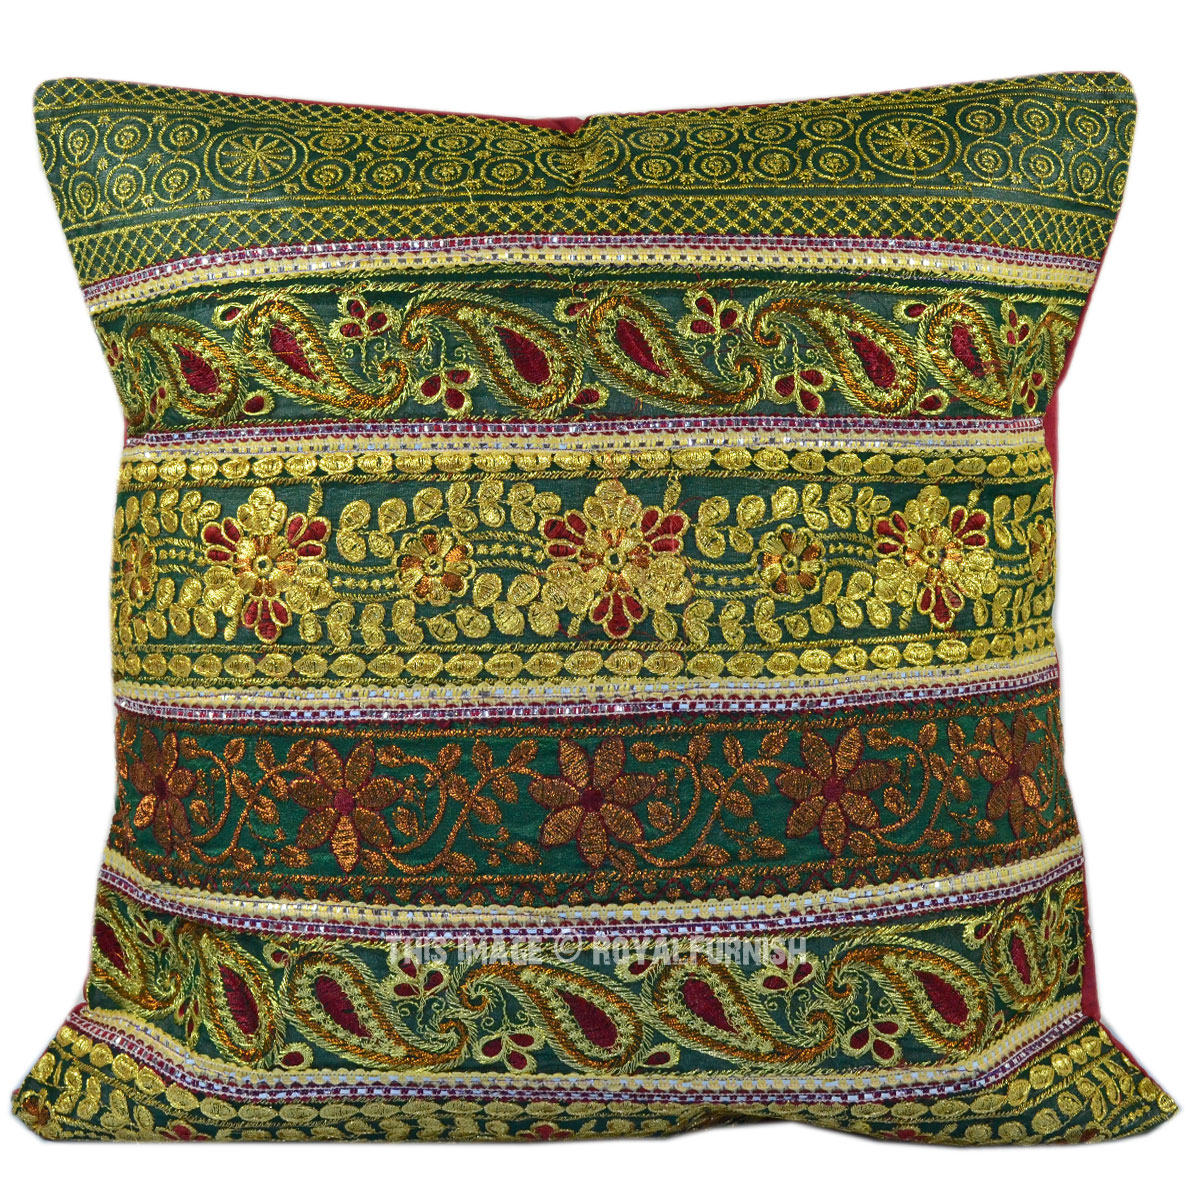 Vintage Decorative Throw Pillows : Antique Golden Thread Sequin Embroidered Indian Decorative Silk Throw Pillow - RoyalFurnish.com